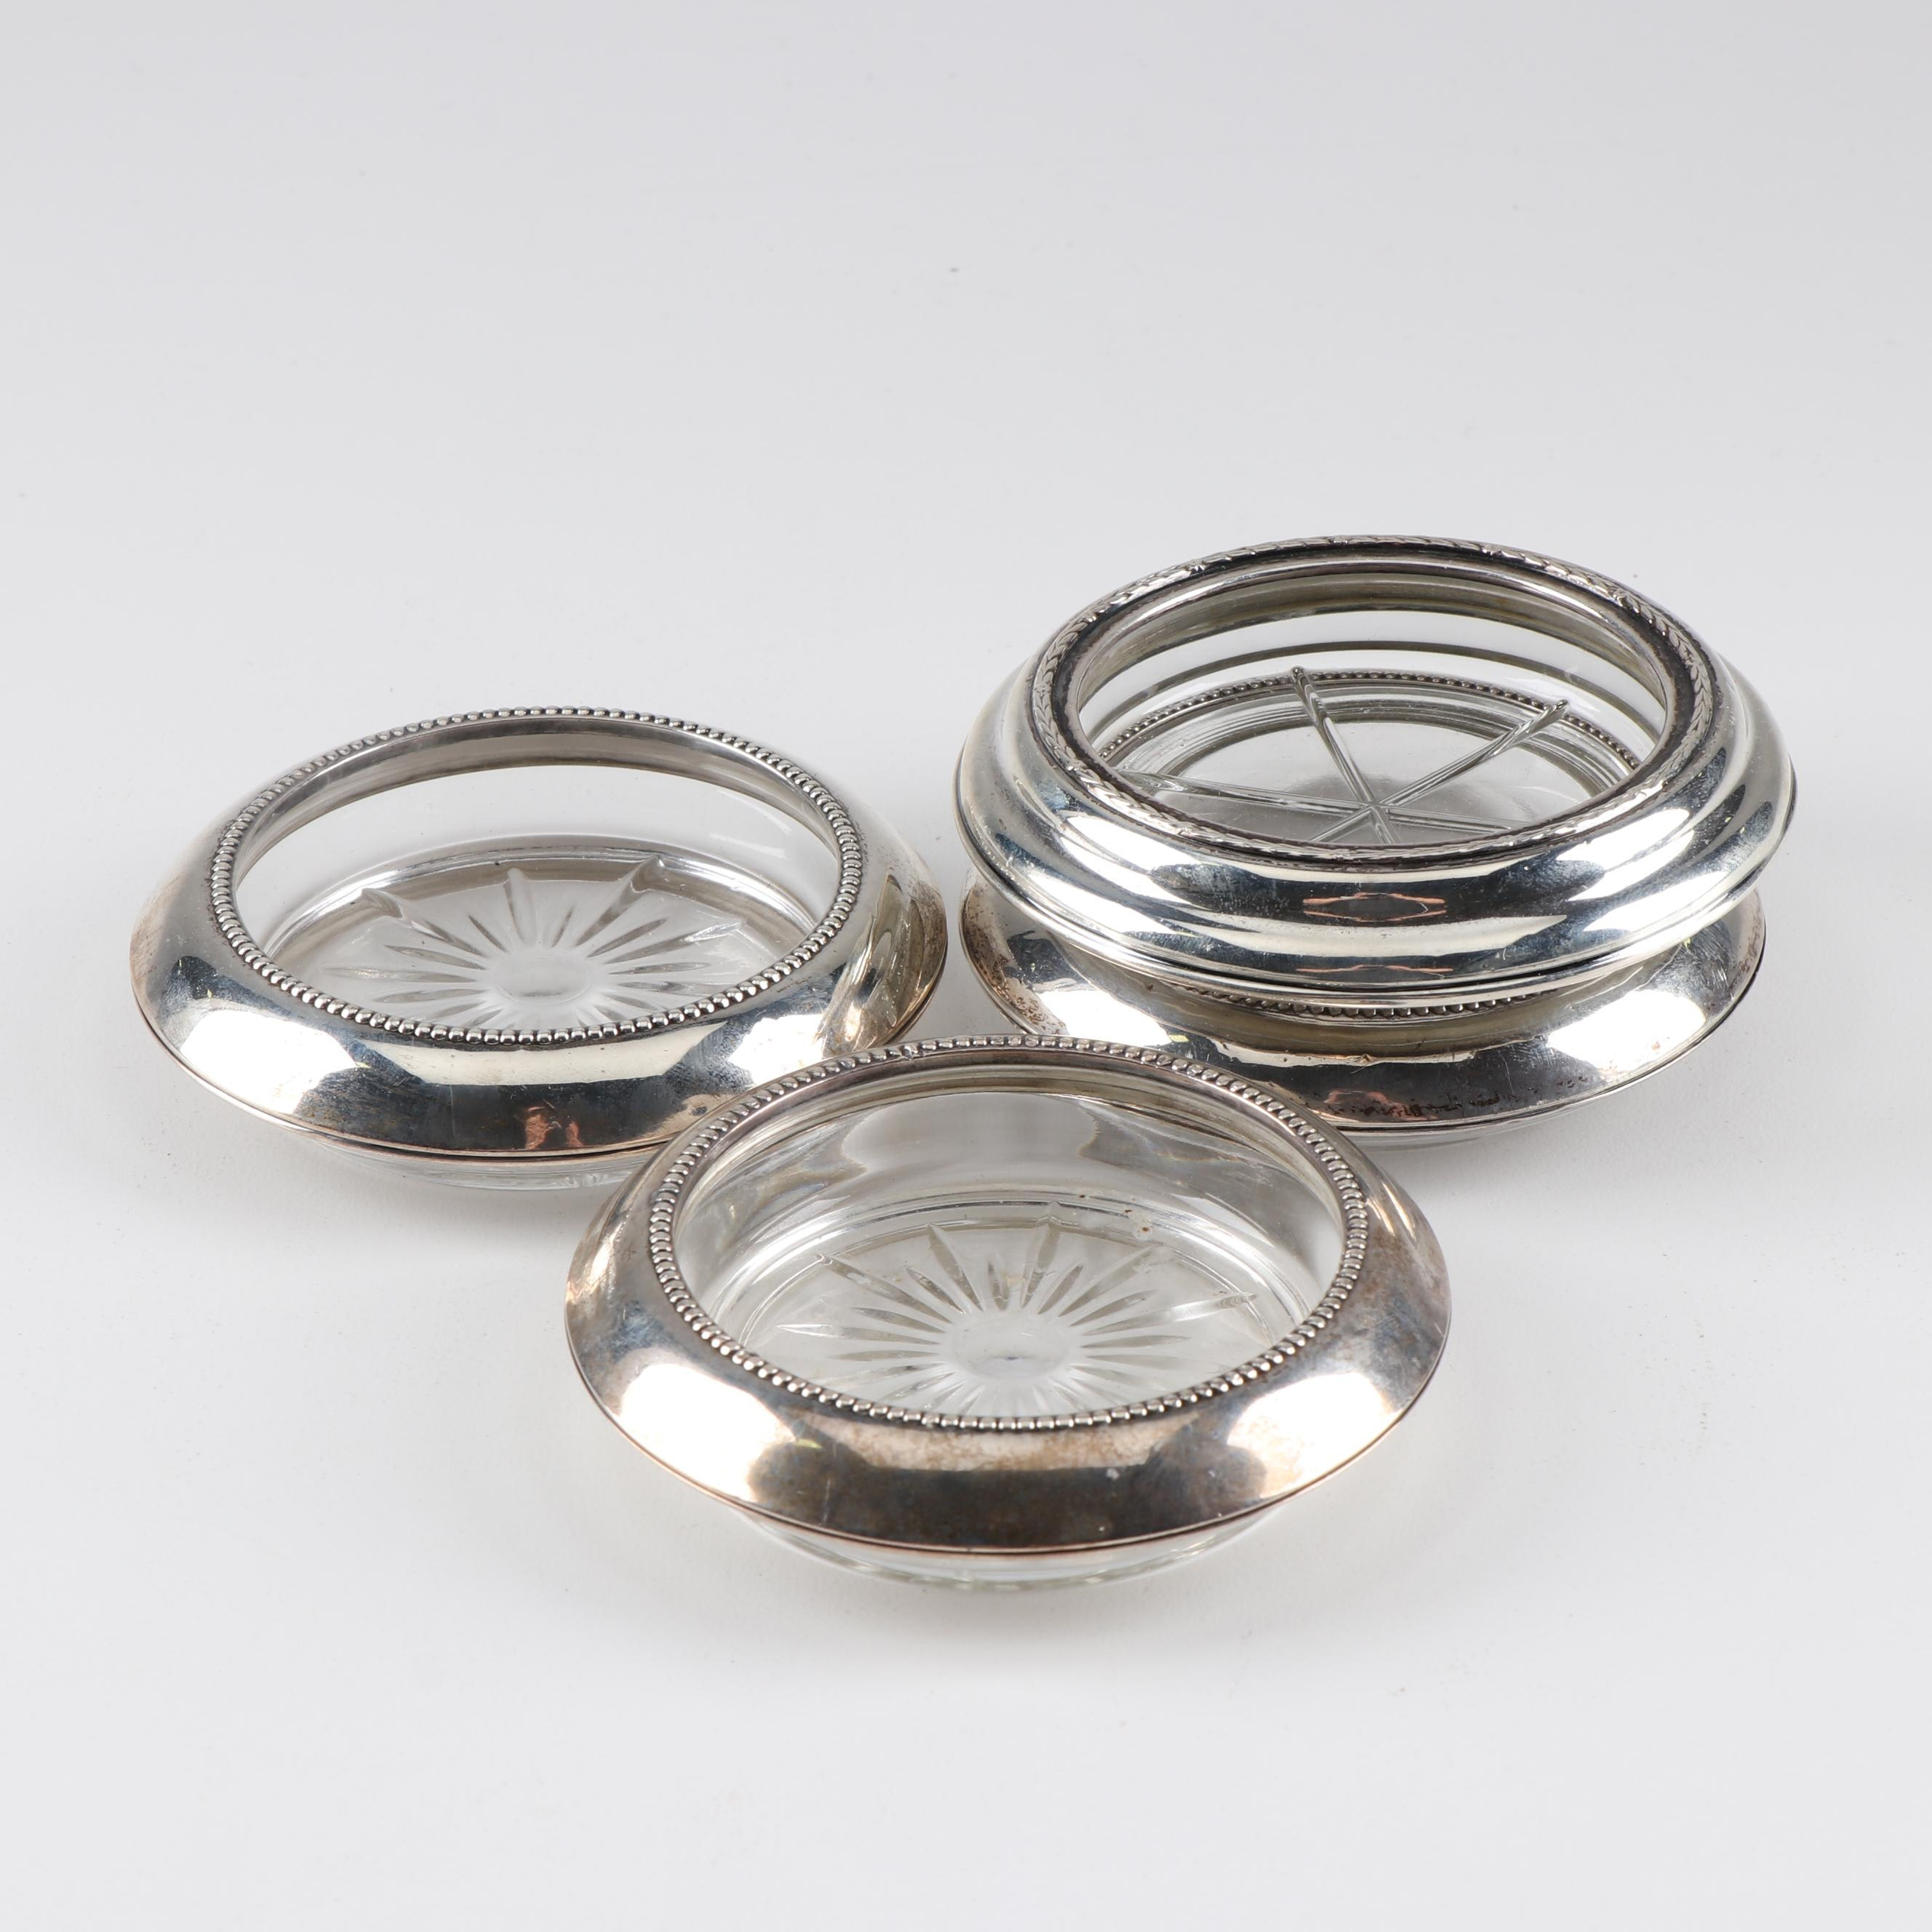 Frank M. Whiting & Co Sterling Silver and Glass Coasters